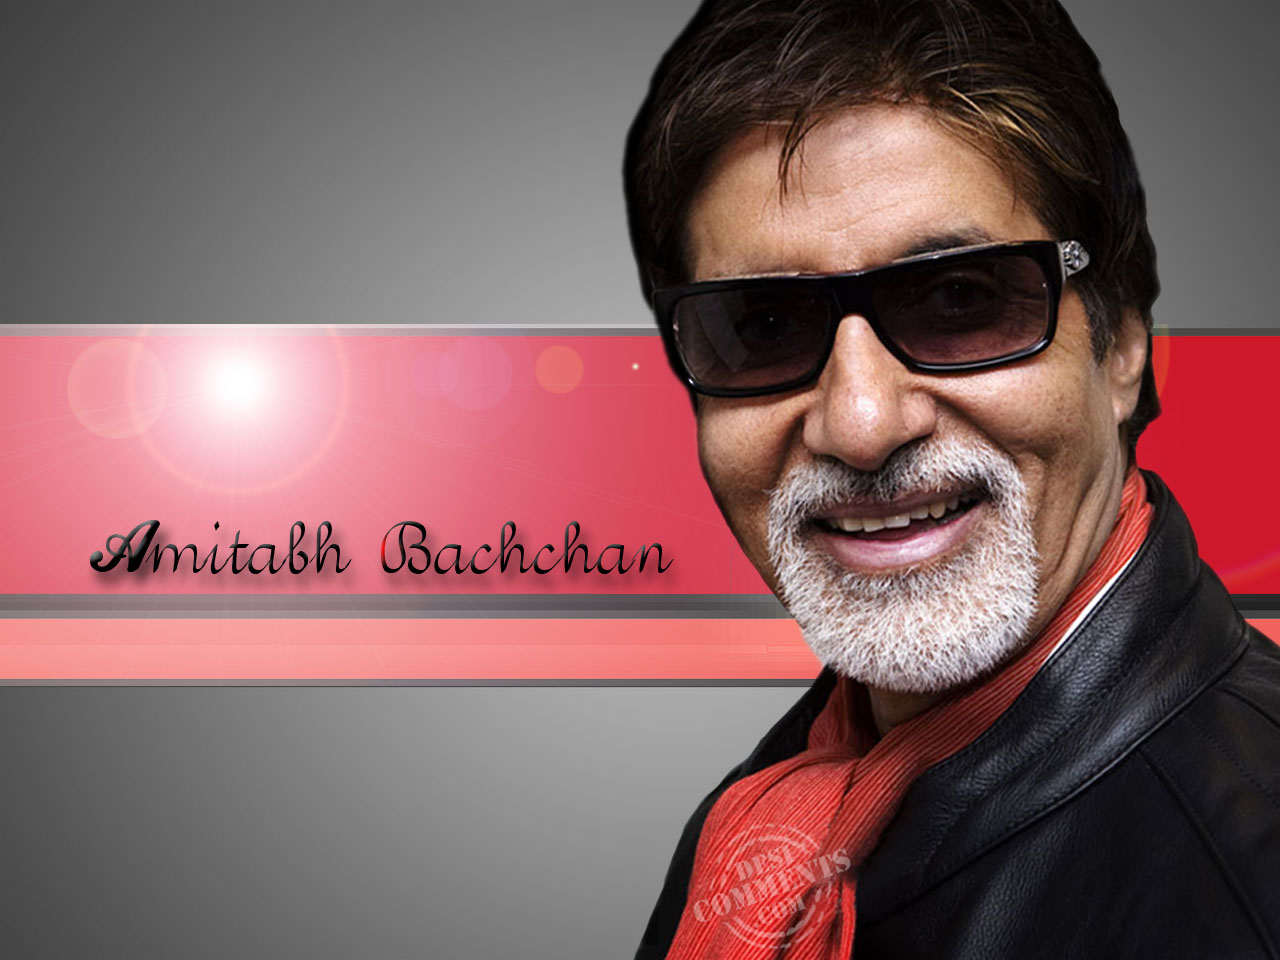 Amitabh Bachchan Car Wallpaper Smiling Face Amitabh Bachchan Desicomments Com